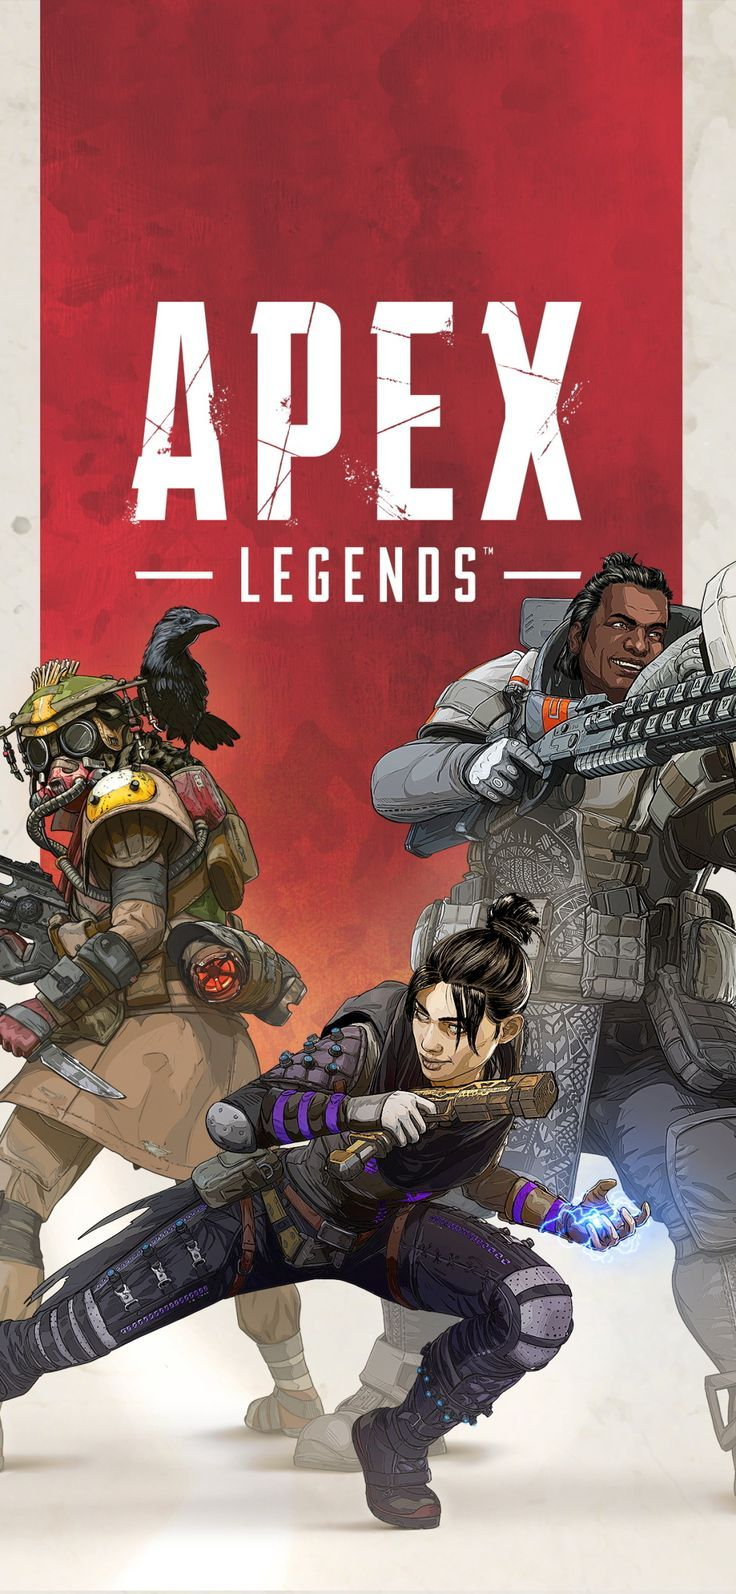 Apex Legends Mobile wallpaper,  #legends #mobile #wallpaper,  #ApexLegendas, Ape...